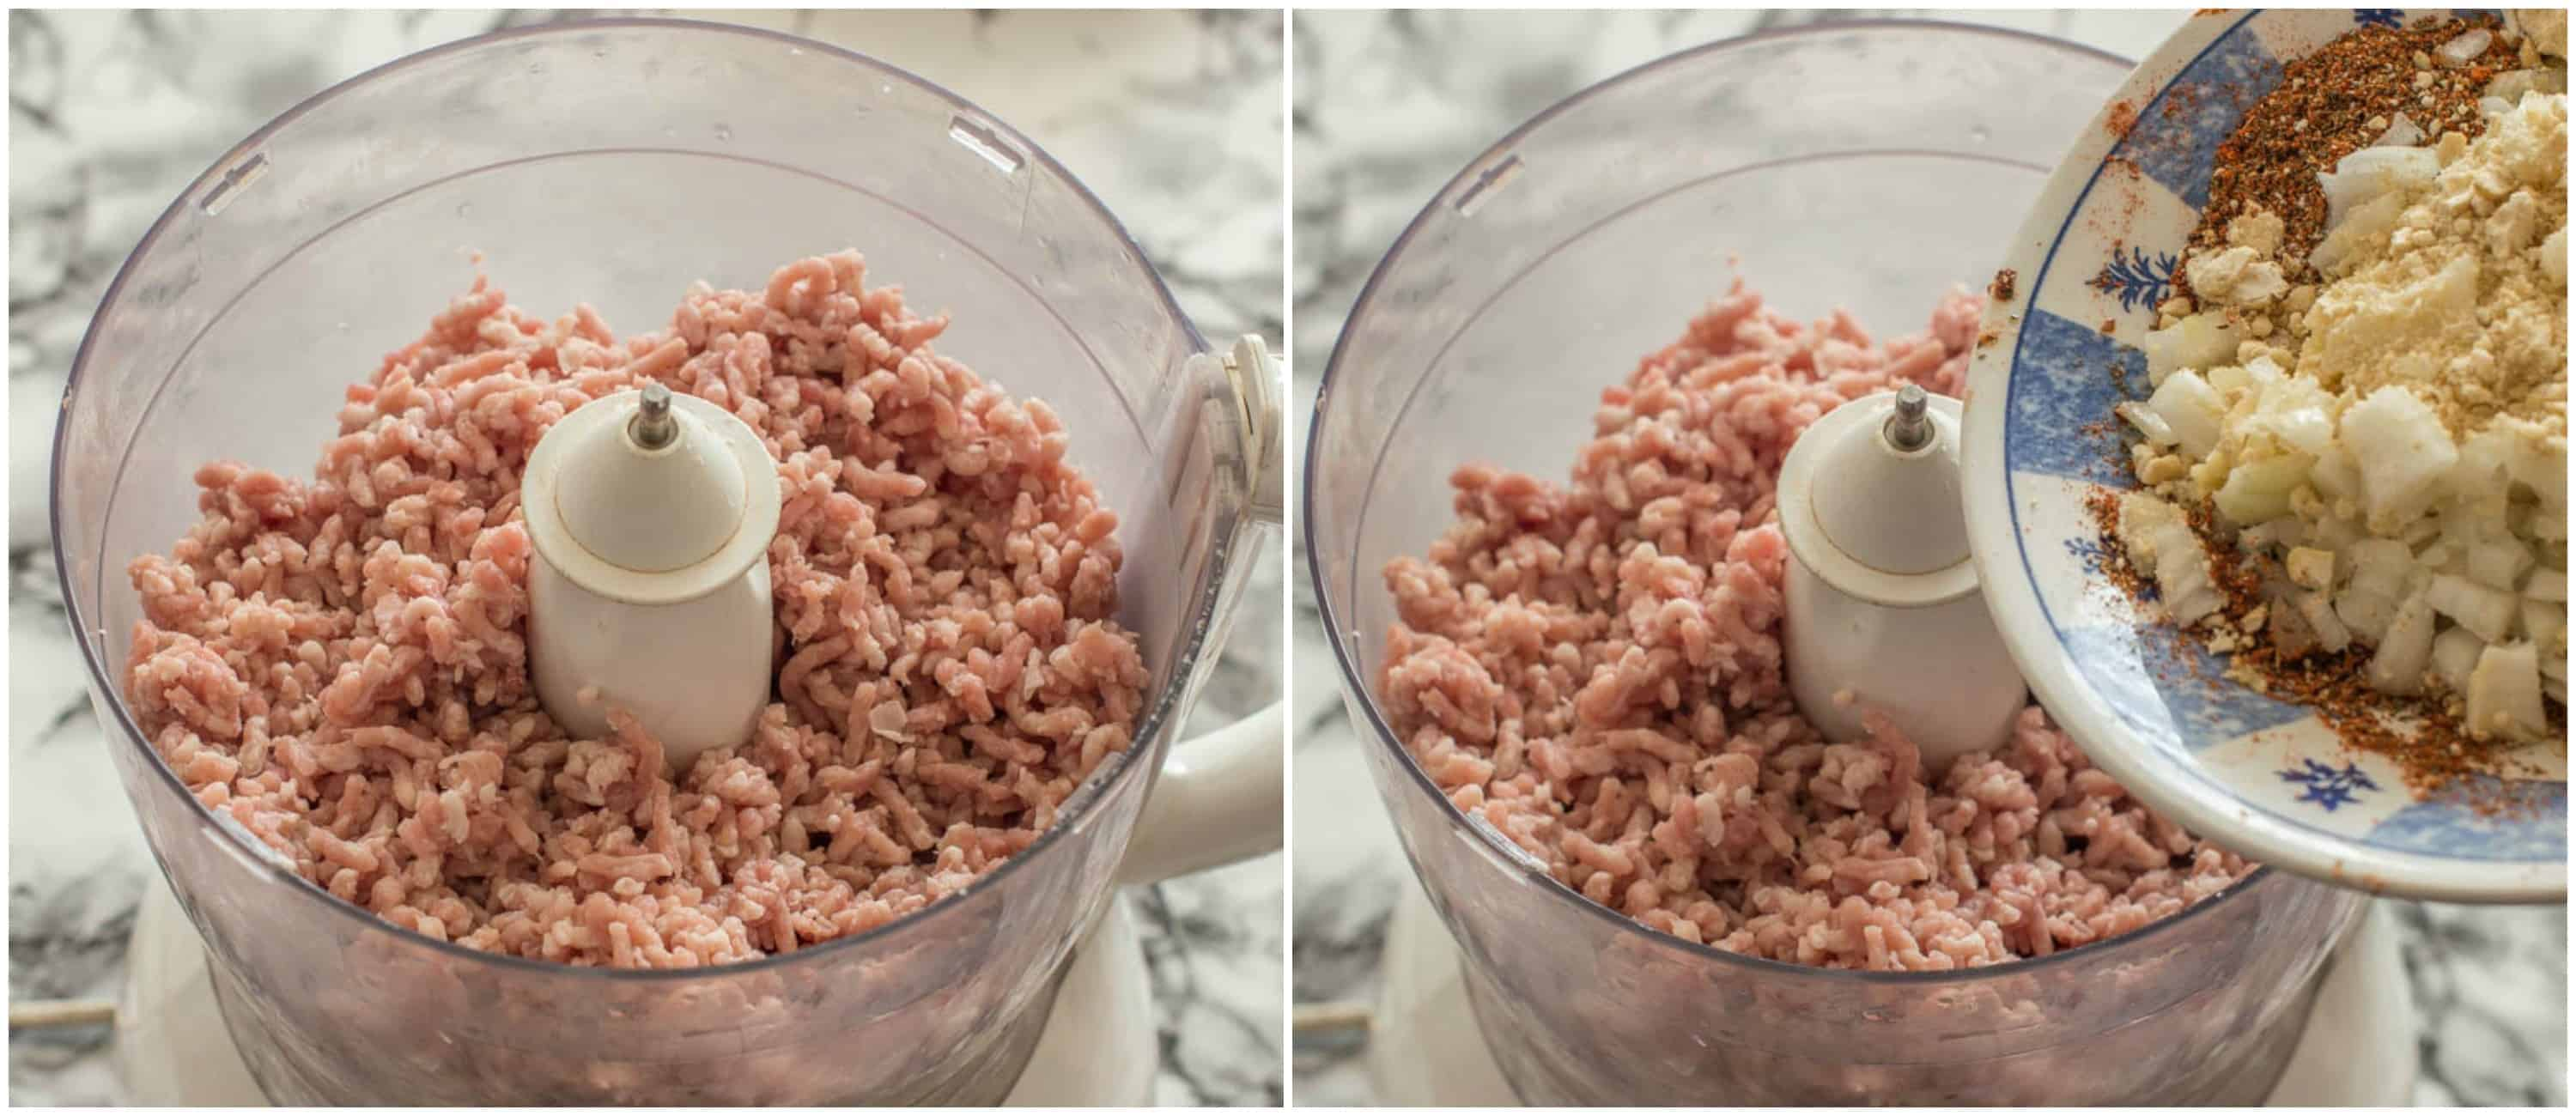 adding the ground mince to the food processor